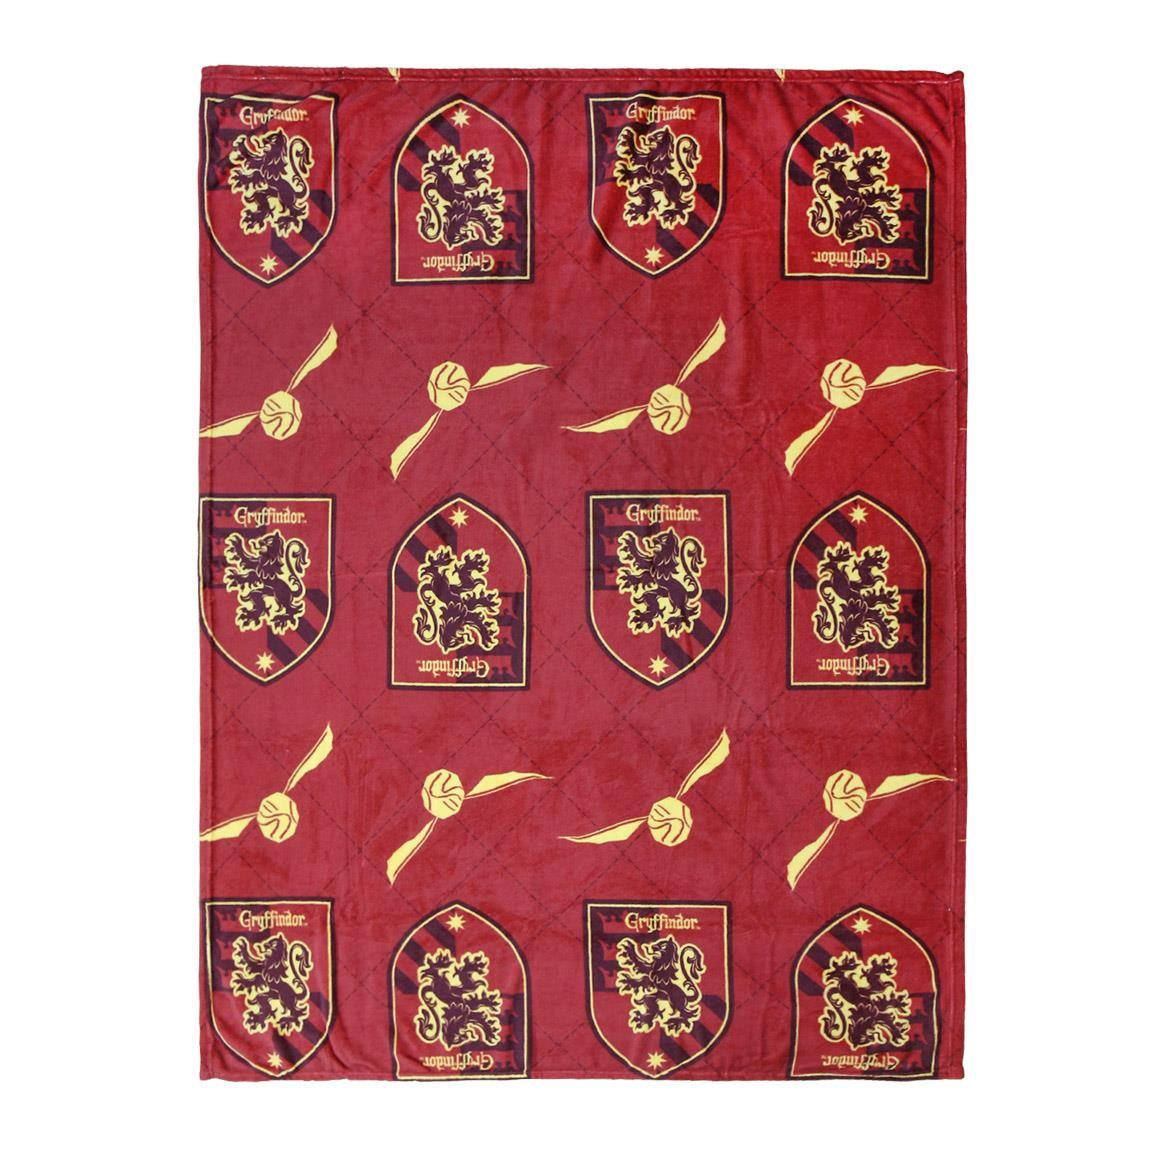 Harry Potter Fleece Blanket Gryffindor 120 x 160 cm